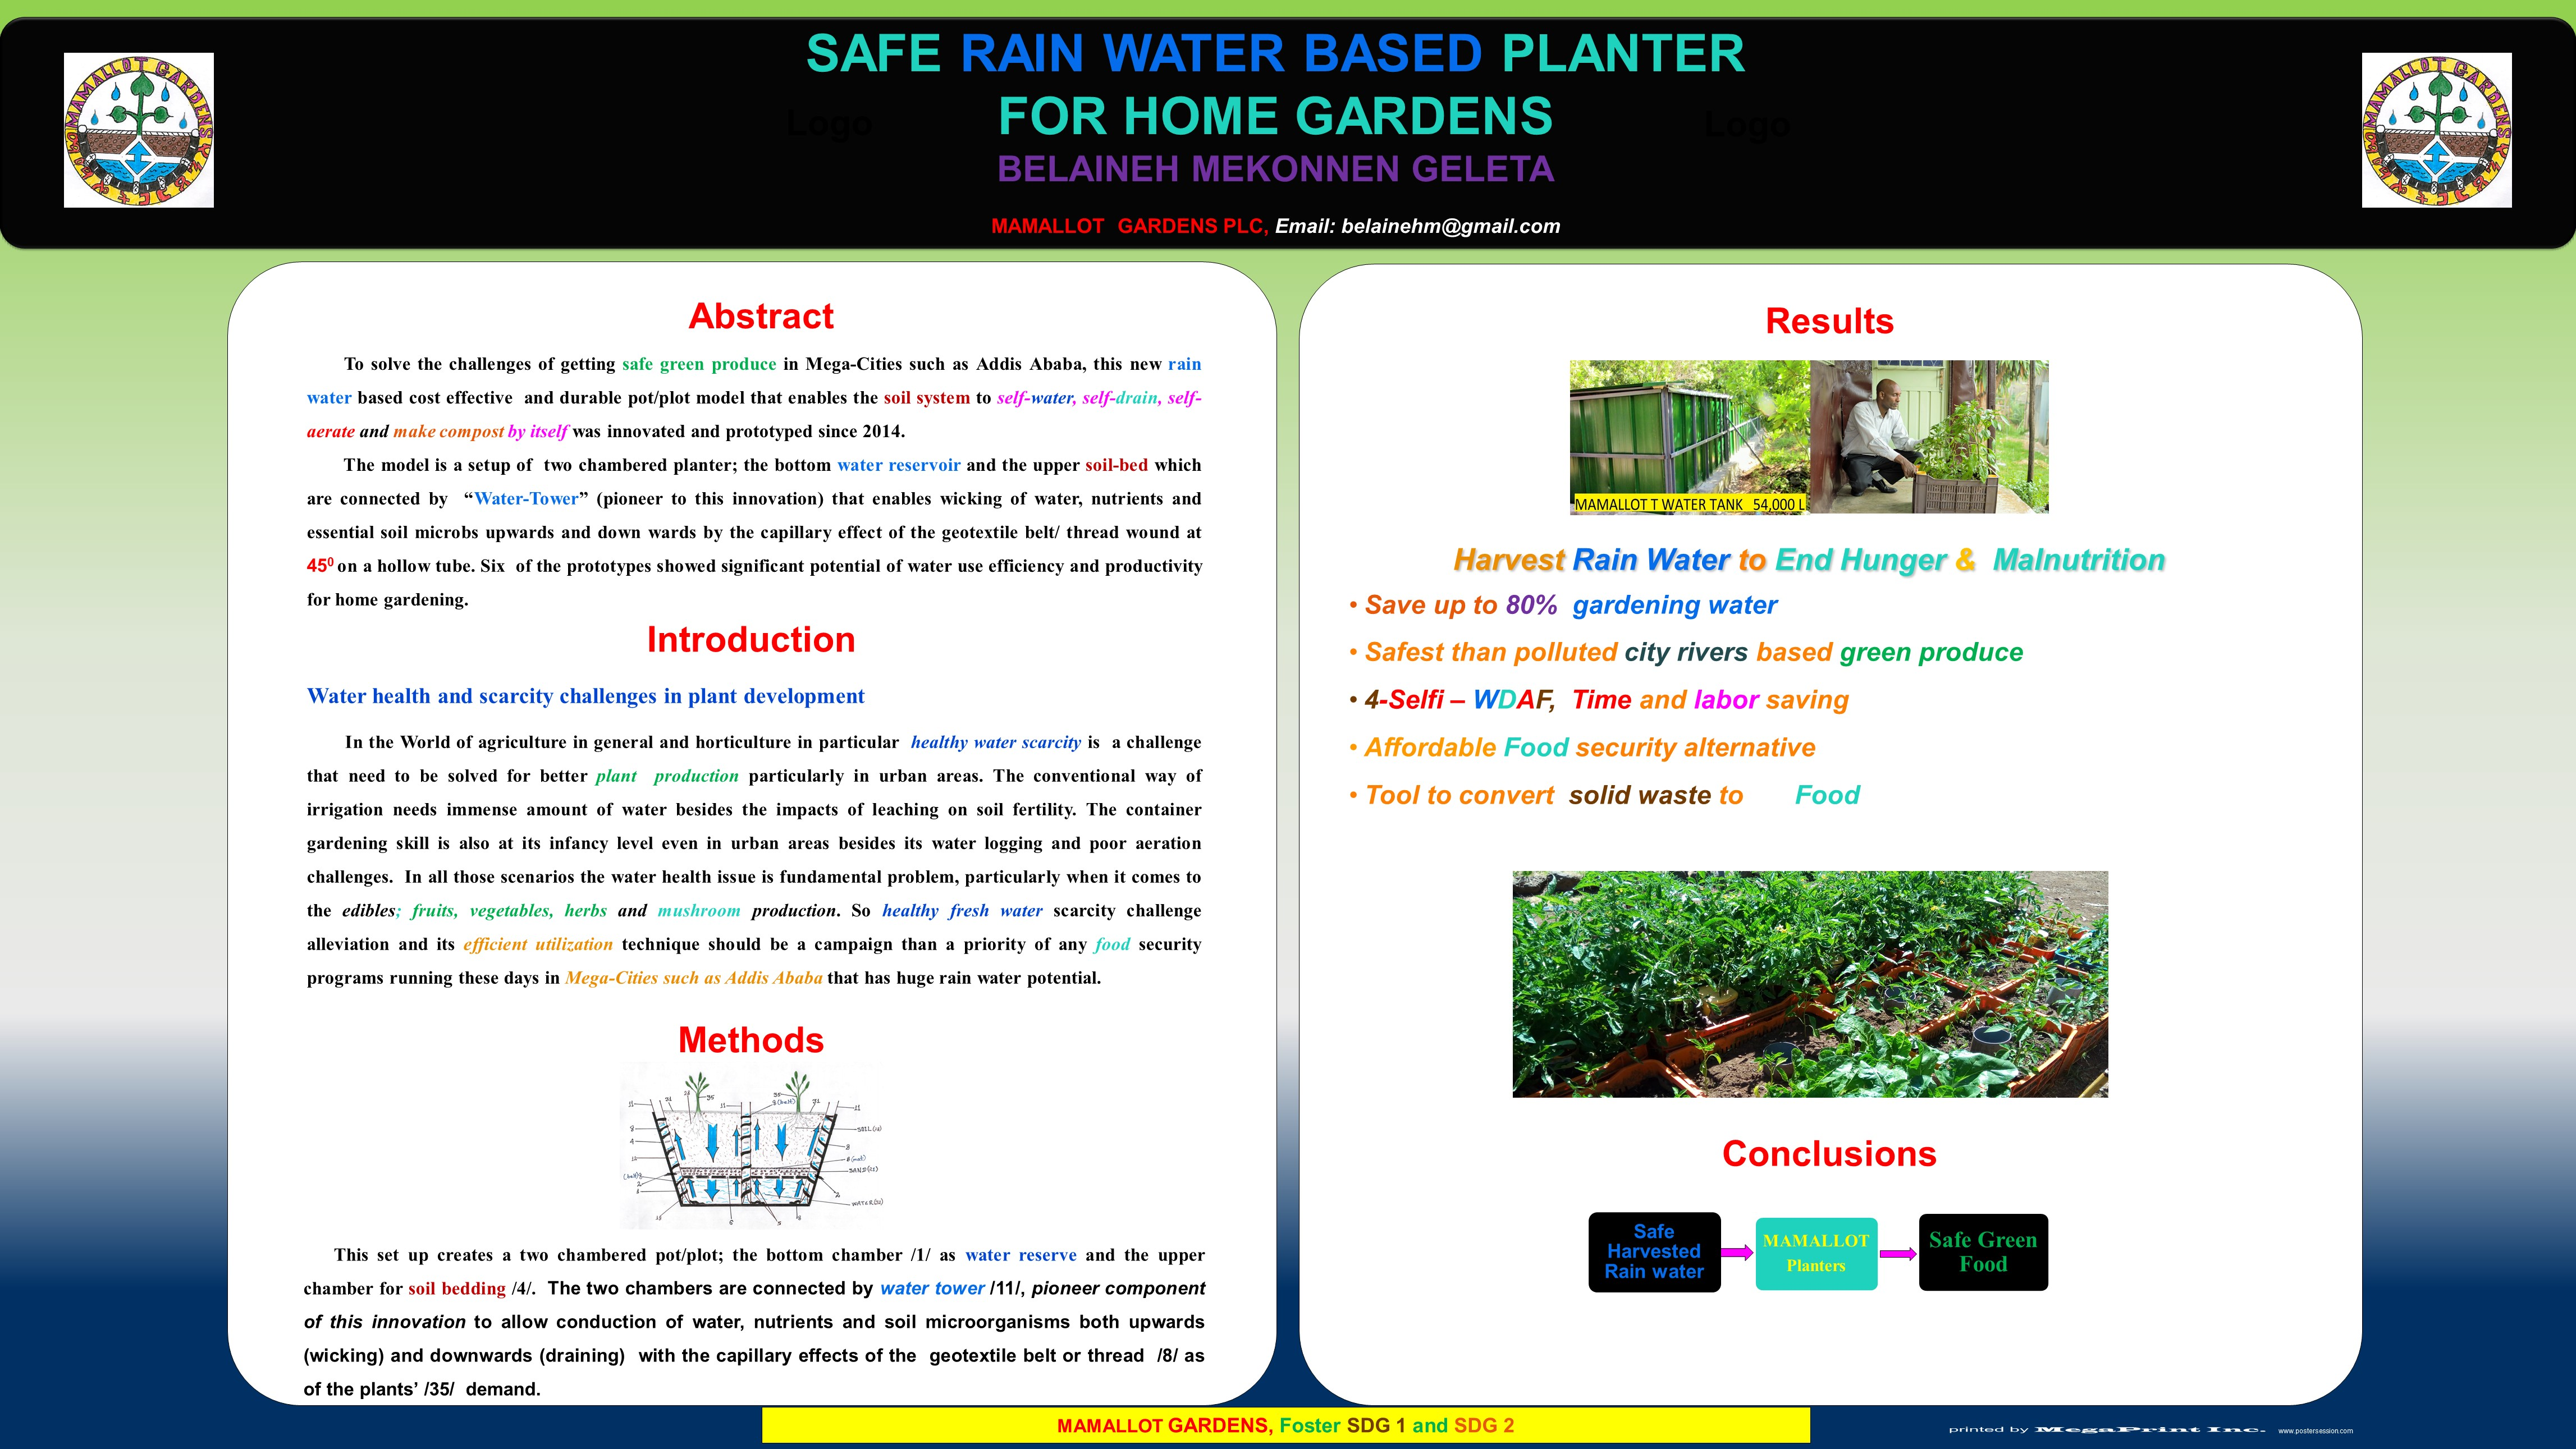 Safe Rainwater Based Planter for Home Gardens